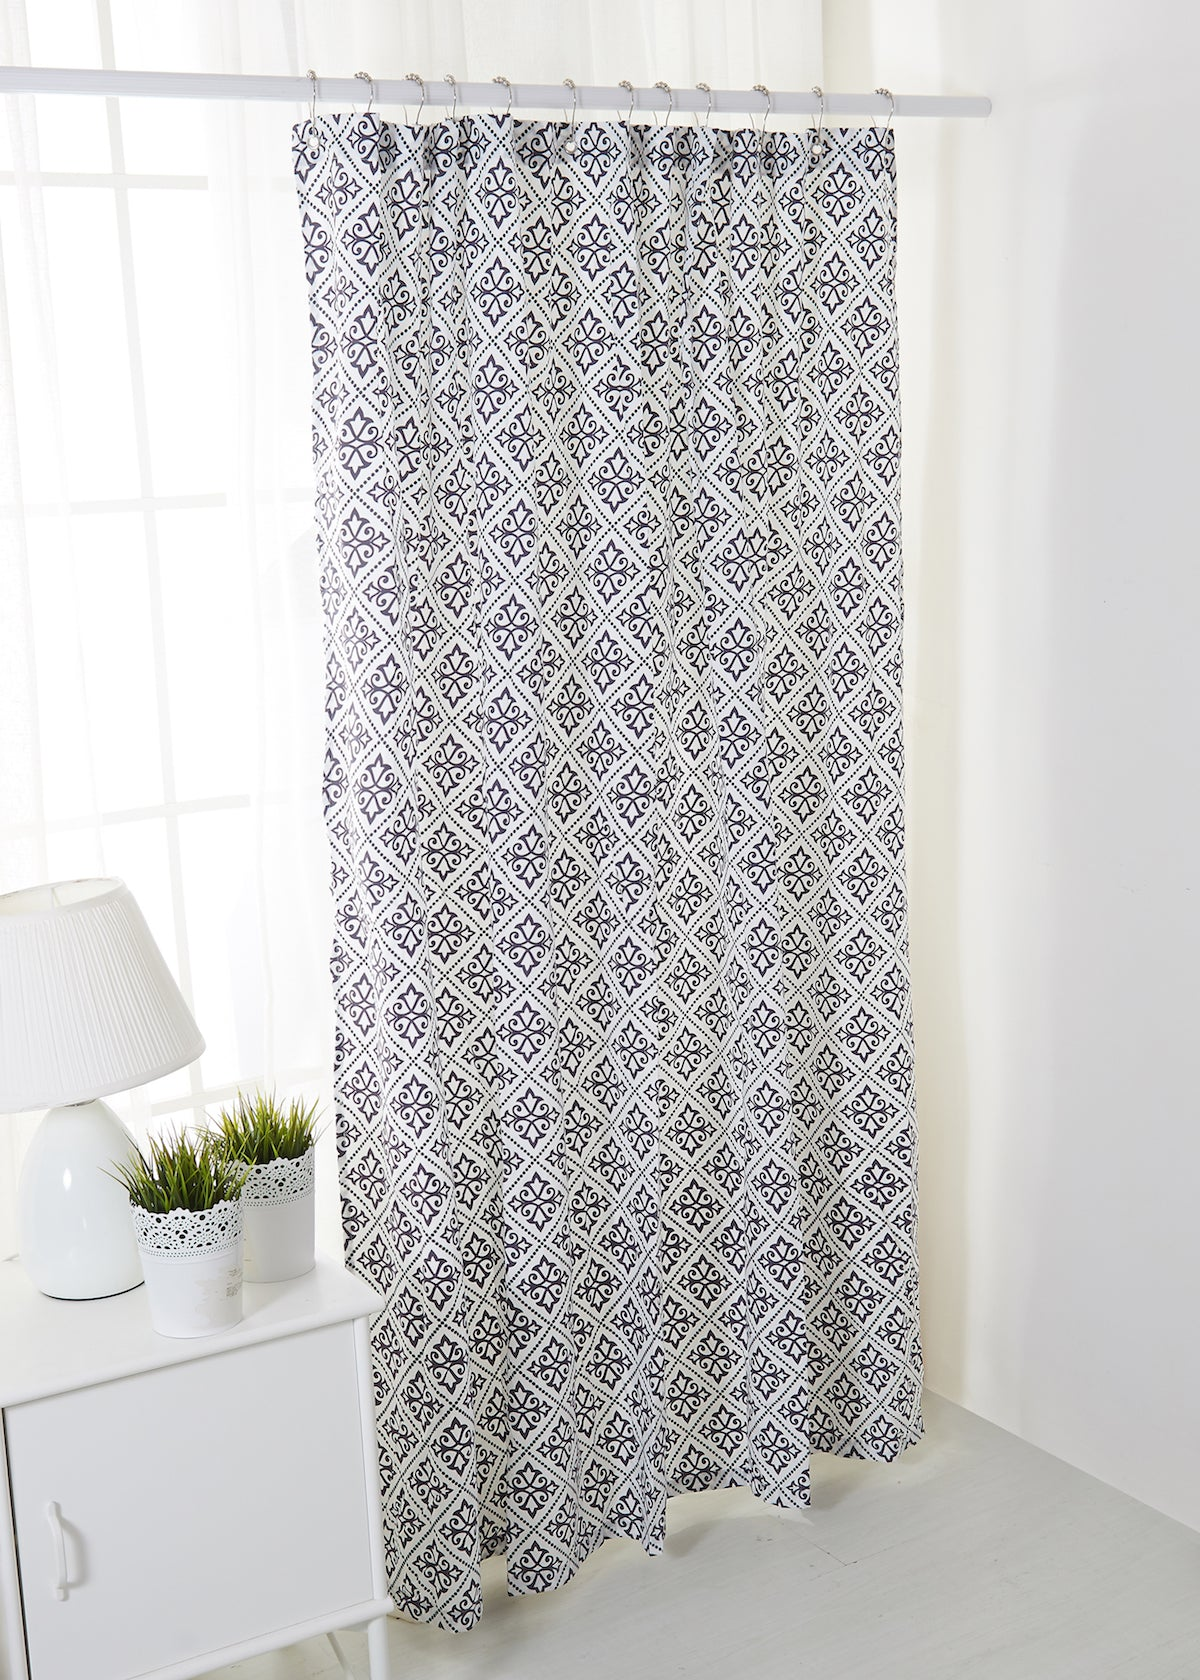 overstock curtain manor avondale product bedding shipping curtains today charcoal shower ella free bath